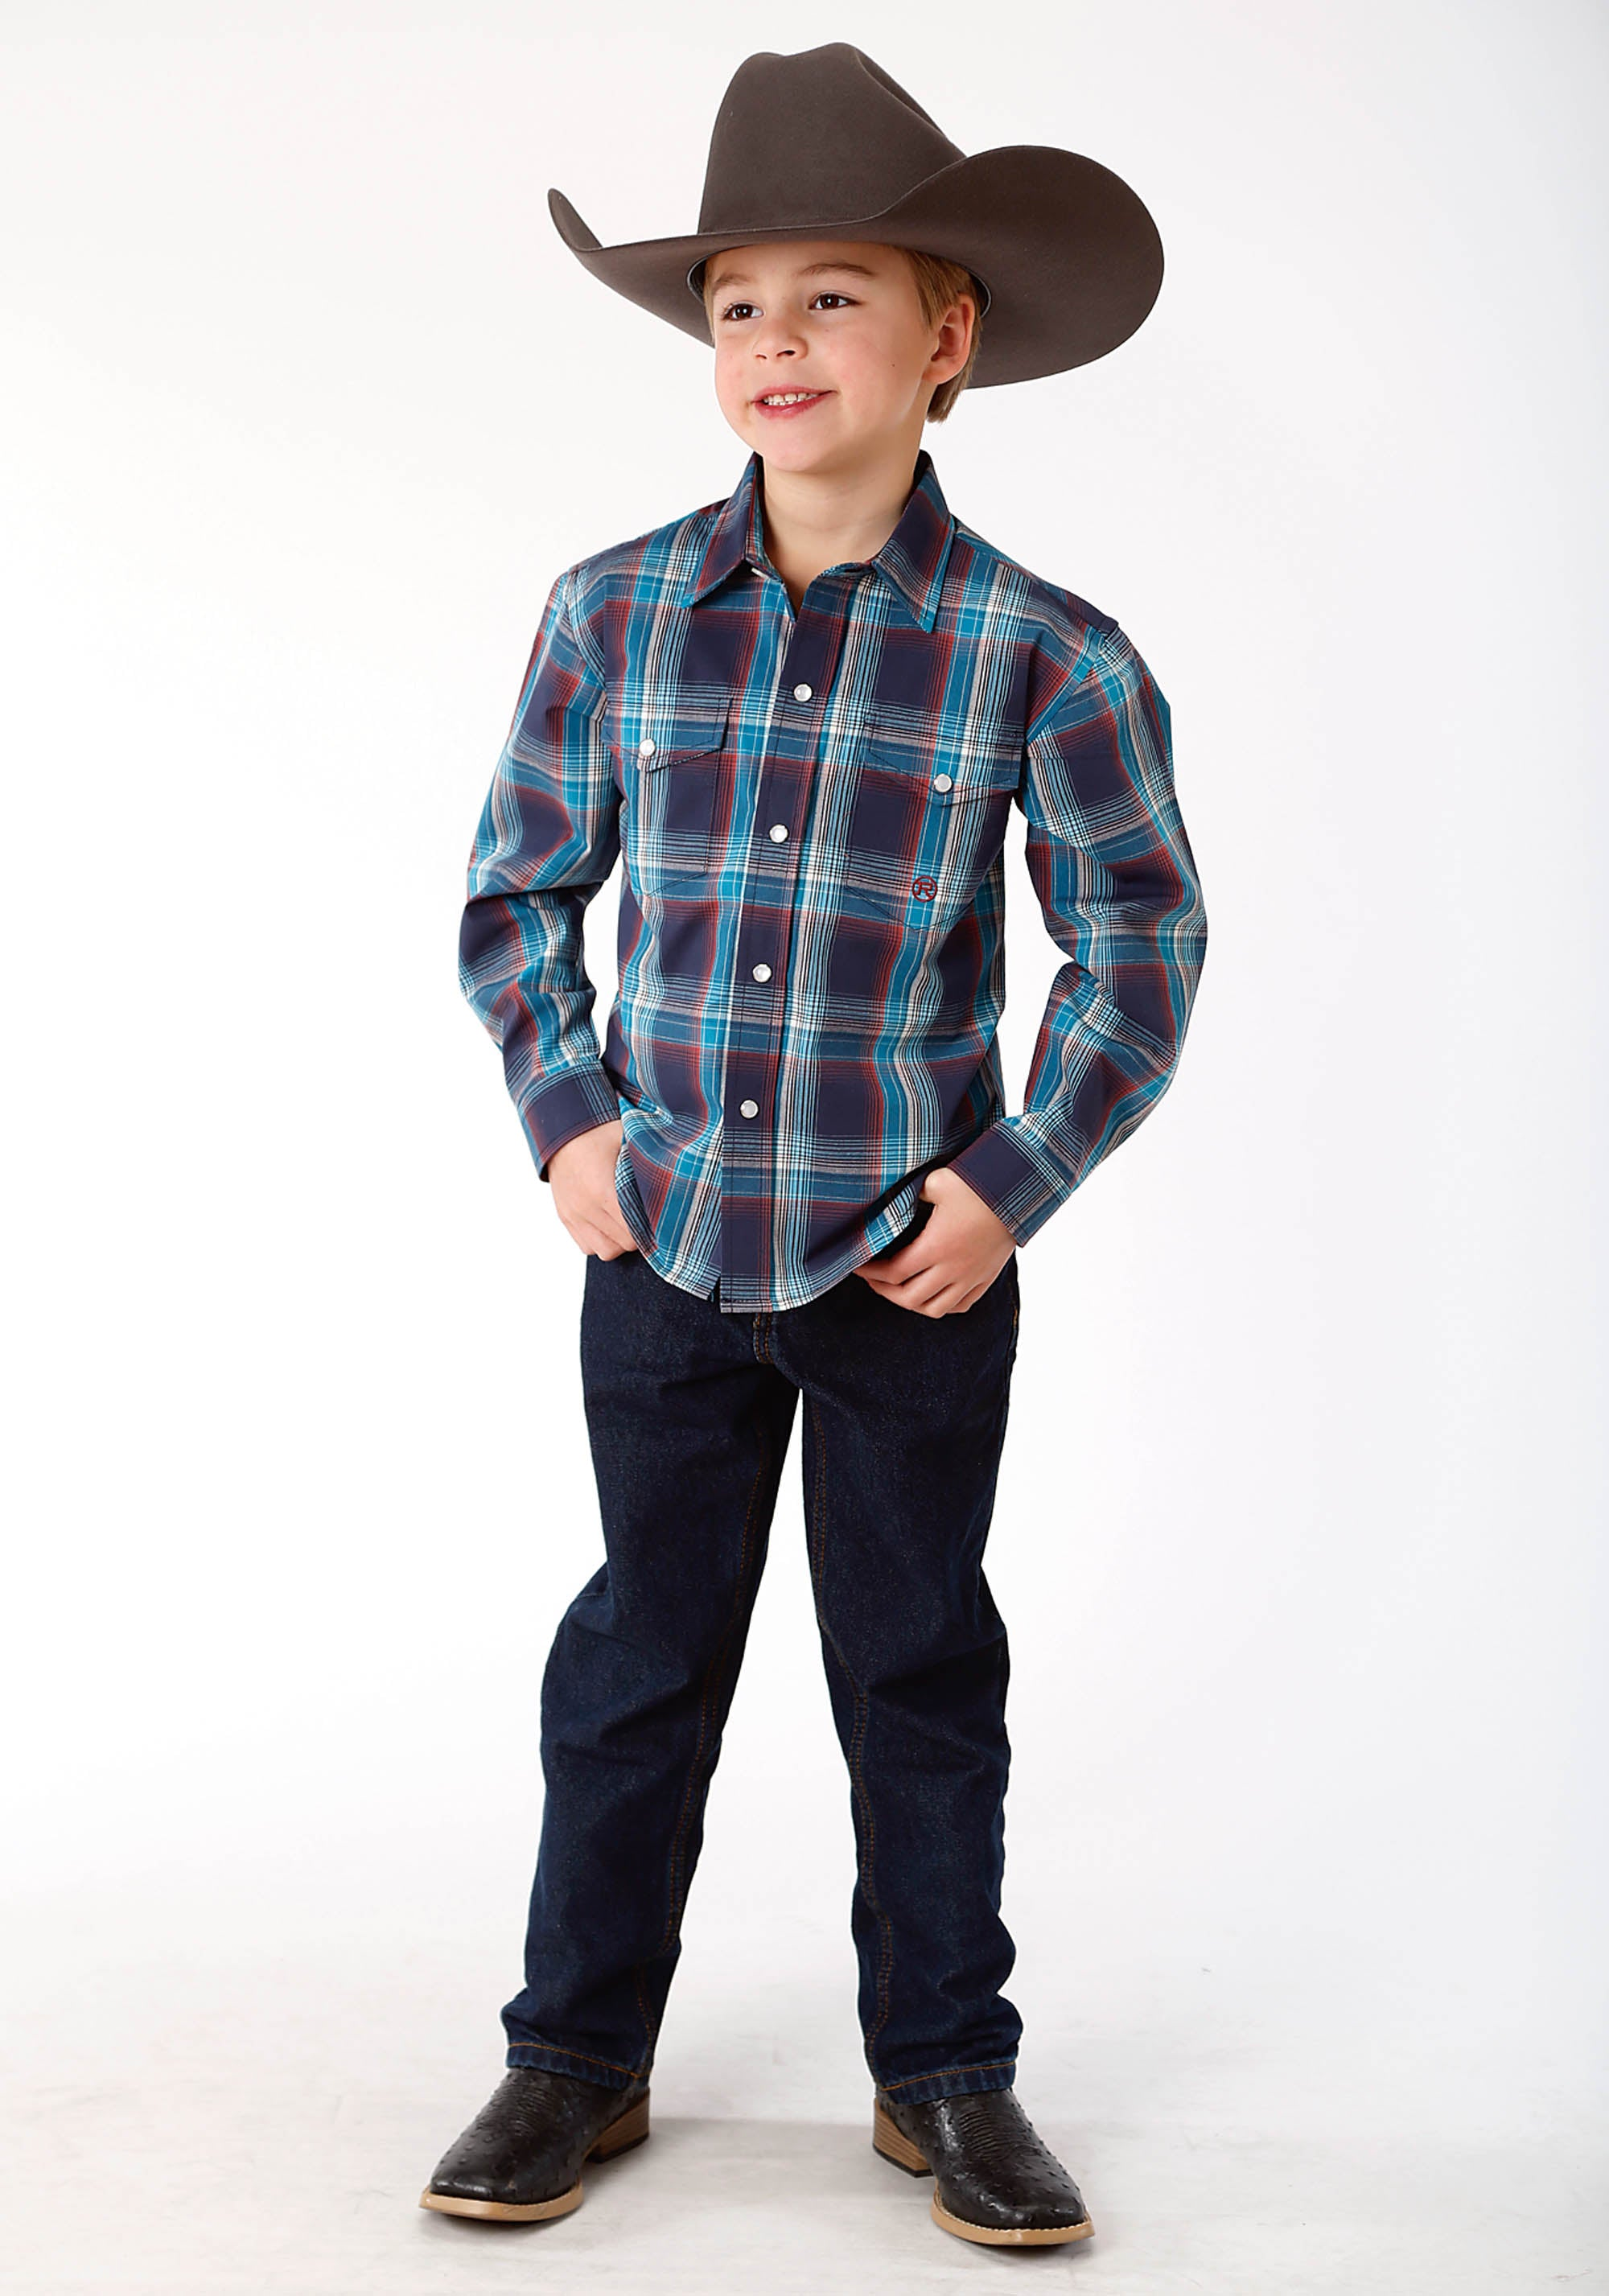 ROPER BOYS BLUE 9607 NIGHTFALL PLAID BOYS AMARILLO COLLECTION- AUTUMN SUNSET LONG SLEEVE